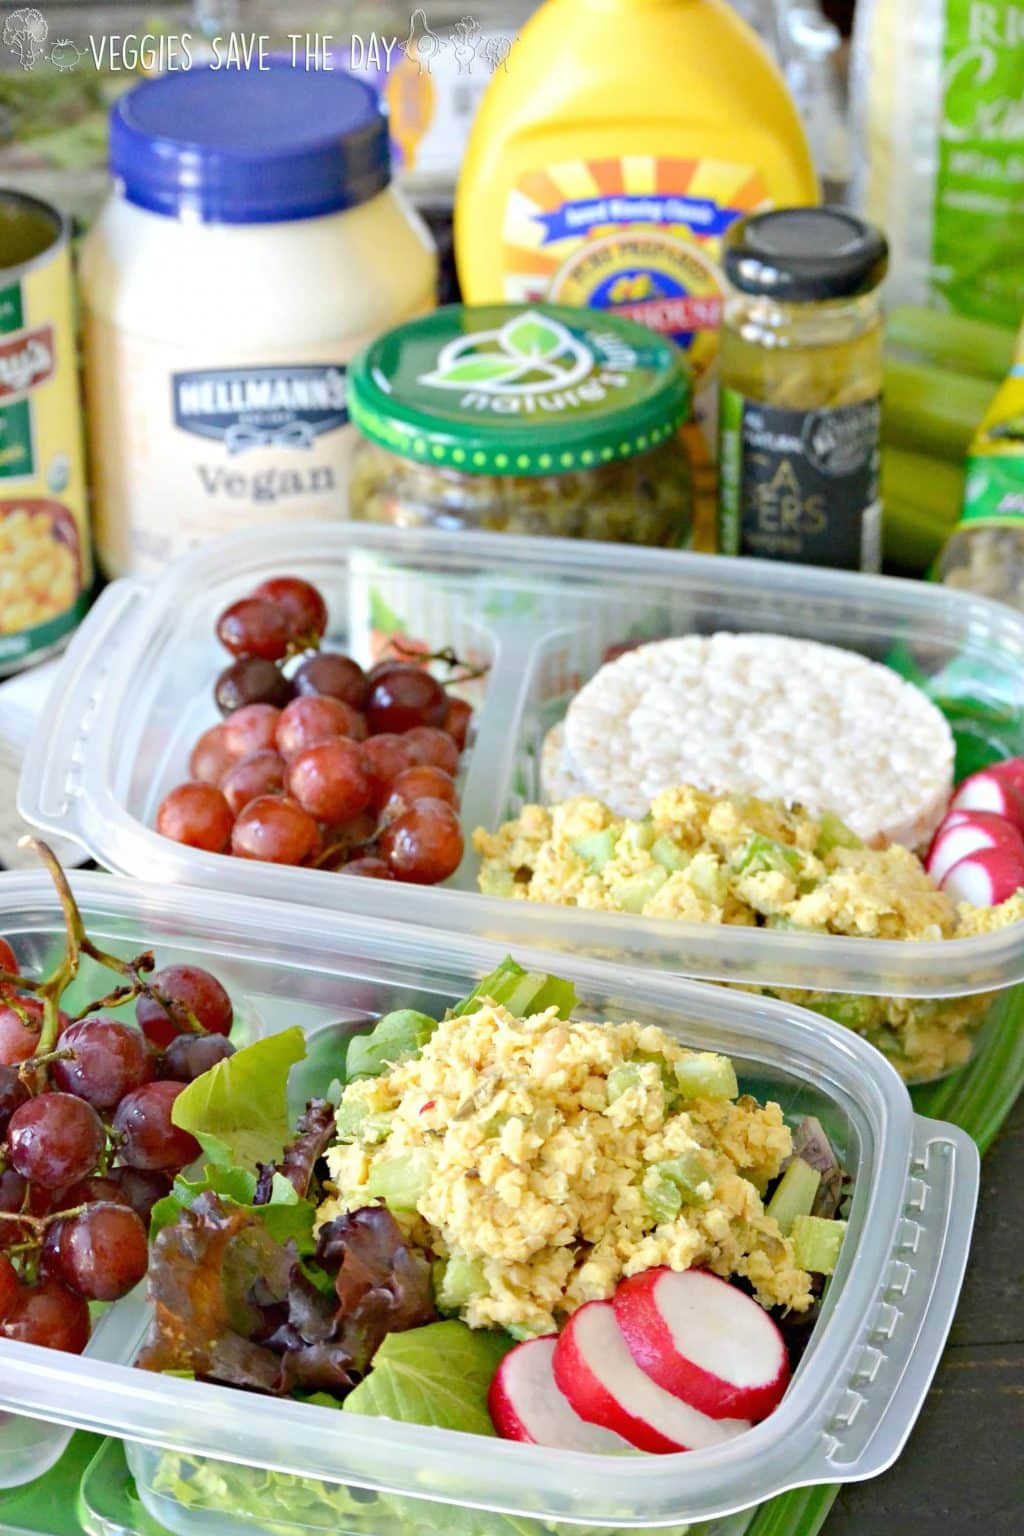 Vegan Tuna Salad is a healthy and affordable lunch to take back to school. Pack it with some mixed greens, brown rice cakes, fruit, and snacks. (vegan and gluten-free)